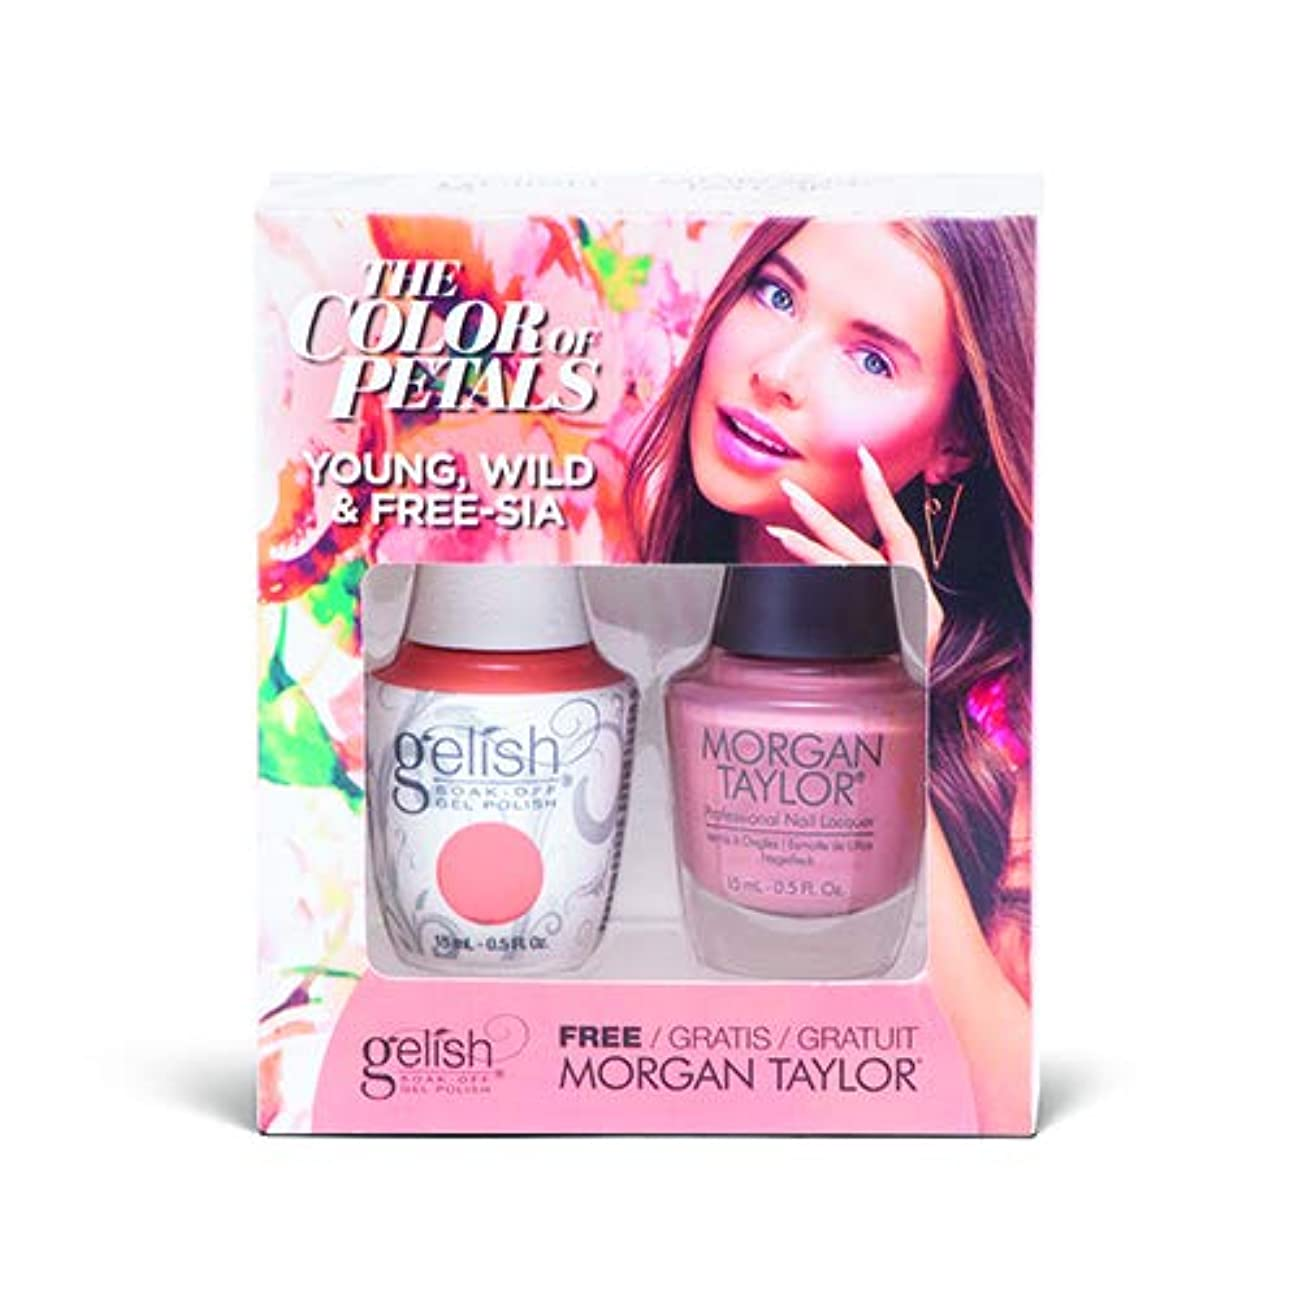 ゆりグッゲンハイム美術館硬さHarmony Gelish - Two Of A Kind - The Color Of Petals - Young, Wild & Free-sia - 15 mL / 0.5 Oz